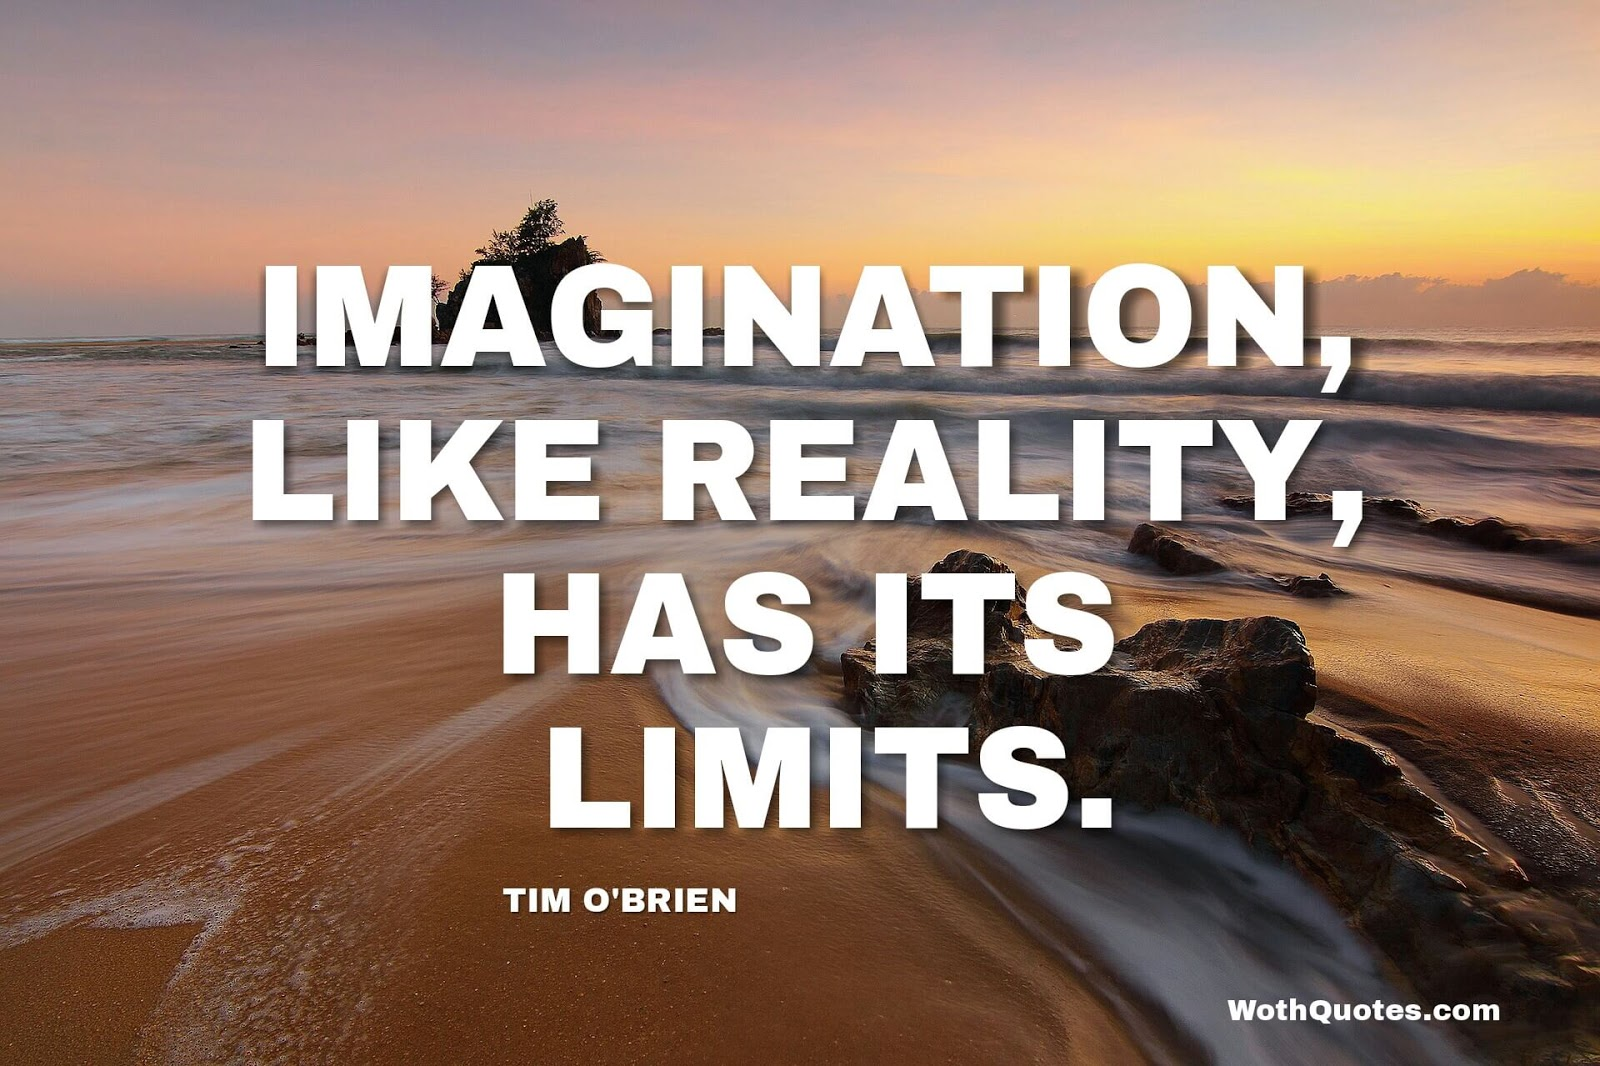 100 Quotes And Sayings About Imagination